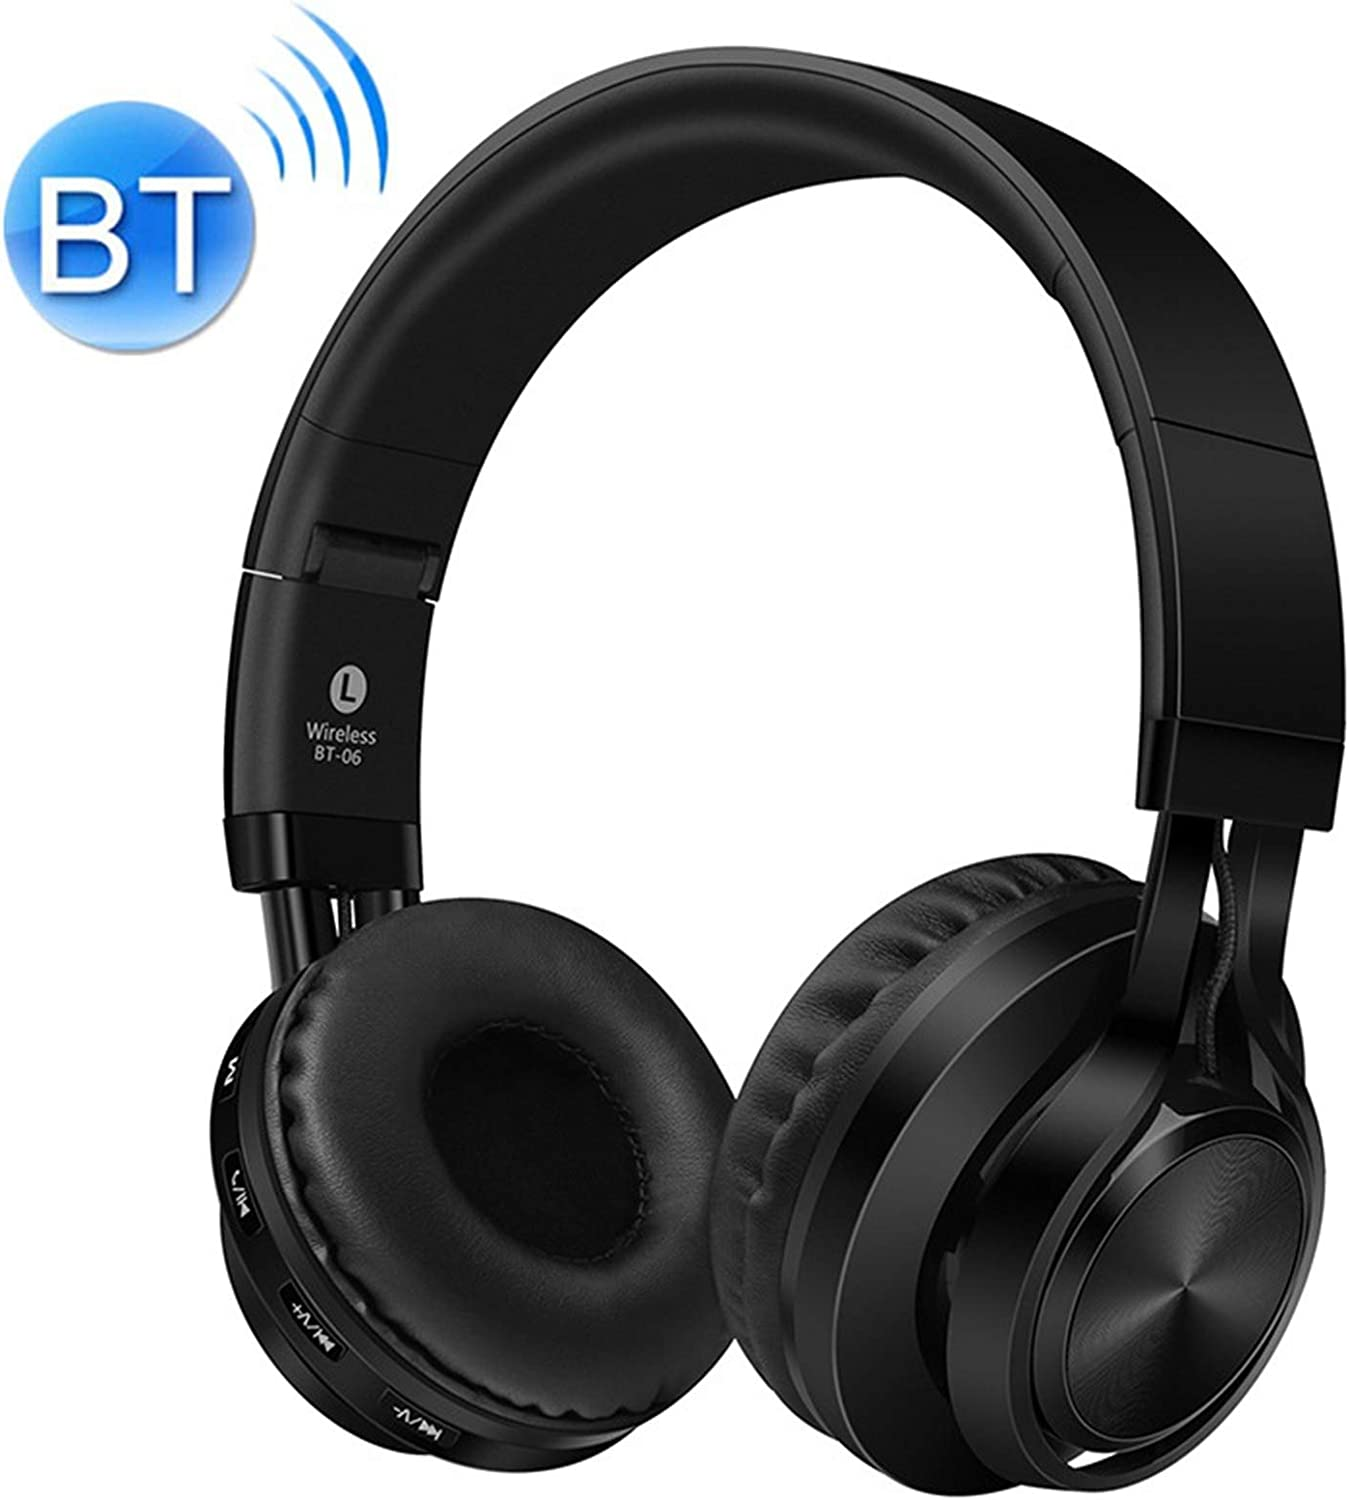 POPUPE BT-06 Over-Ear Wireless Headphones Adjustable Foldable Bluetooth Headset with Mic (Black)